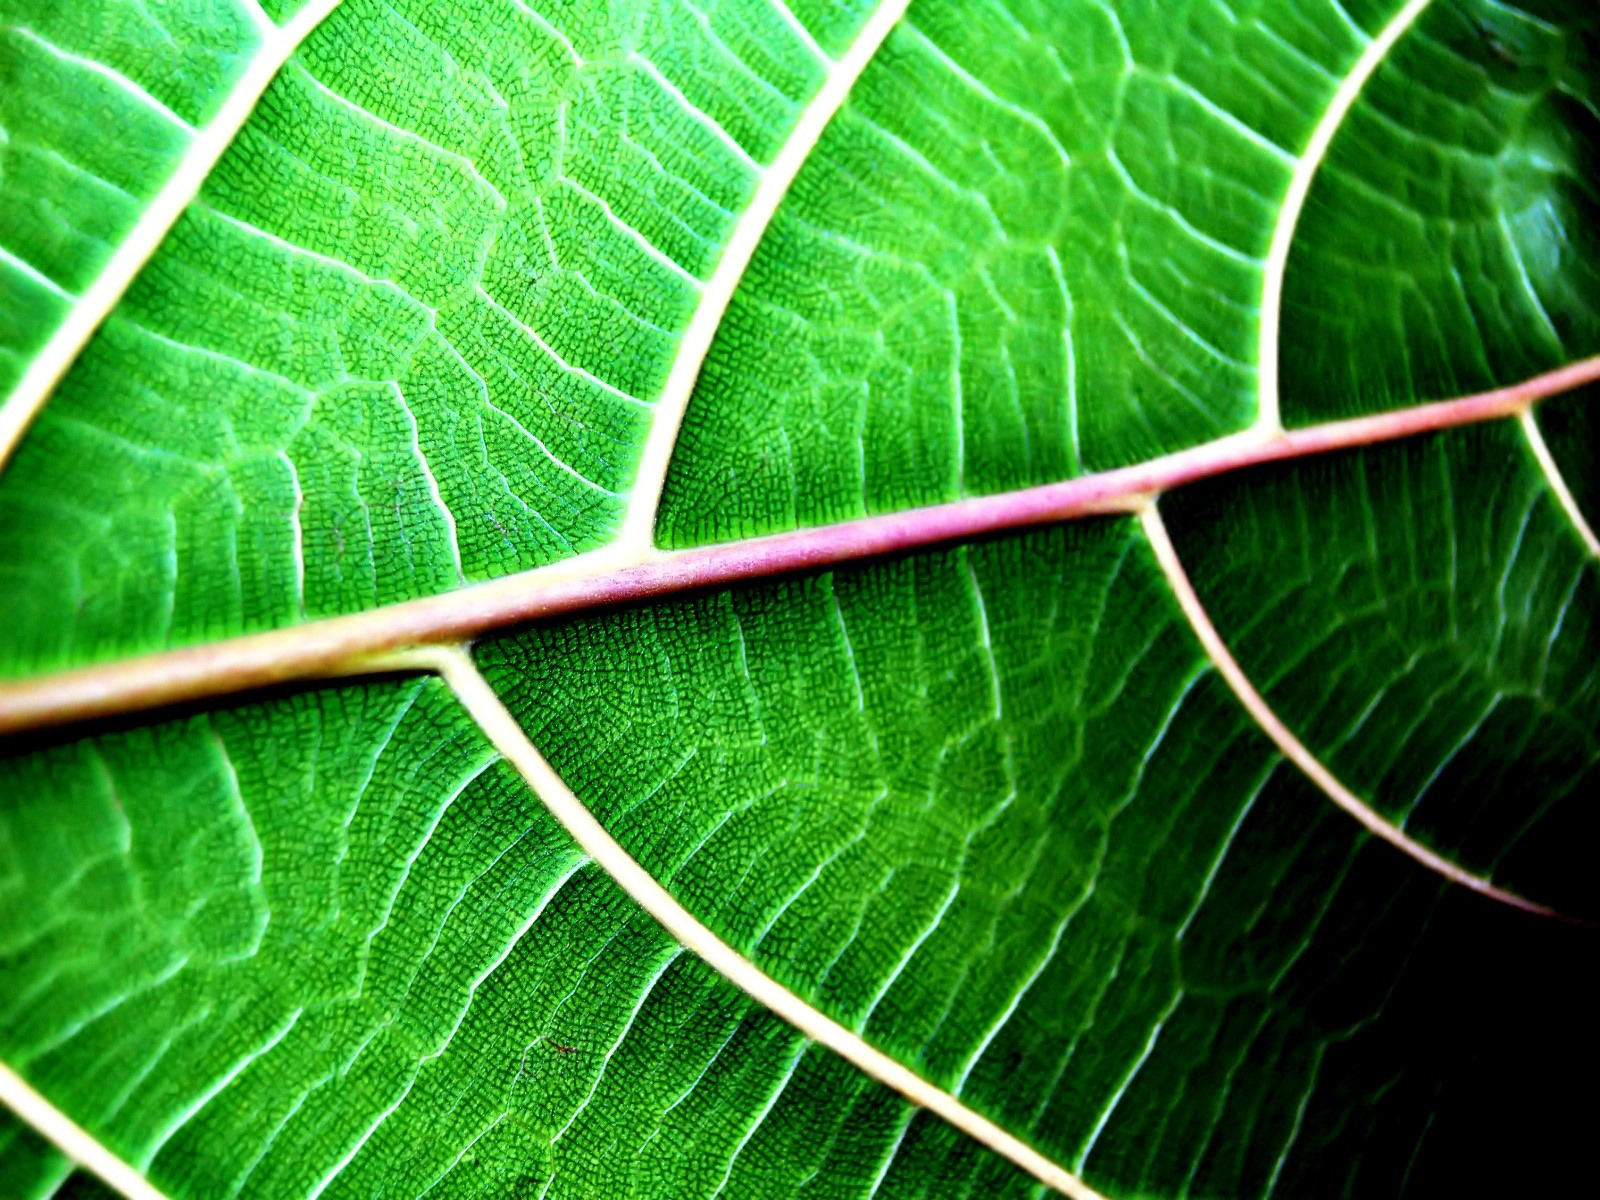 leaf structure nature plants 1200 wallpapers 1600 plant leaves anatomy